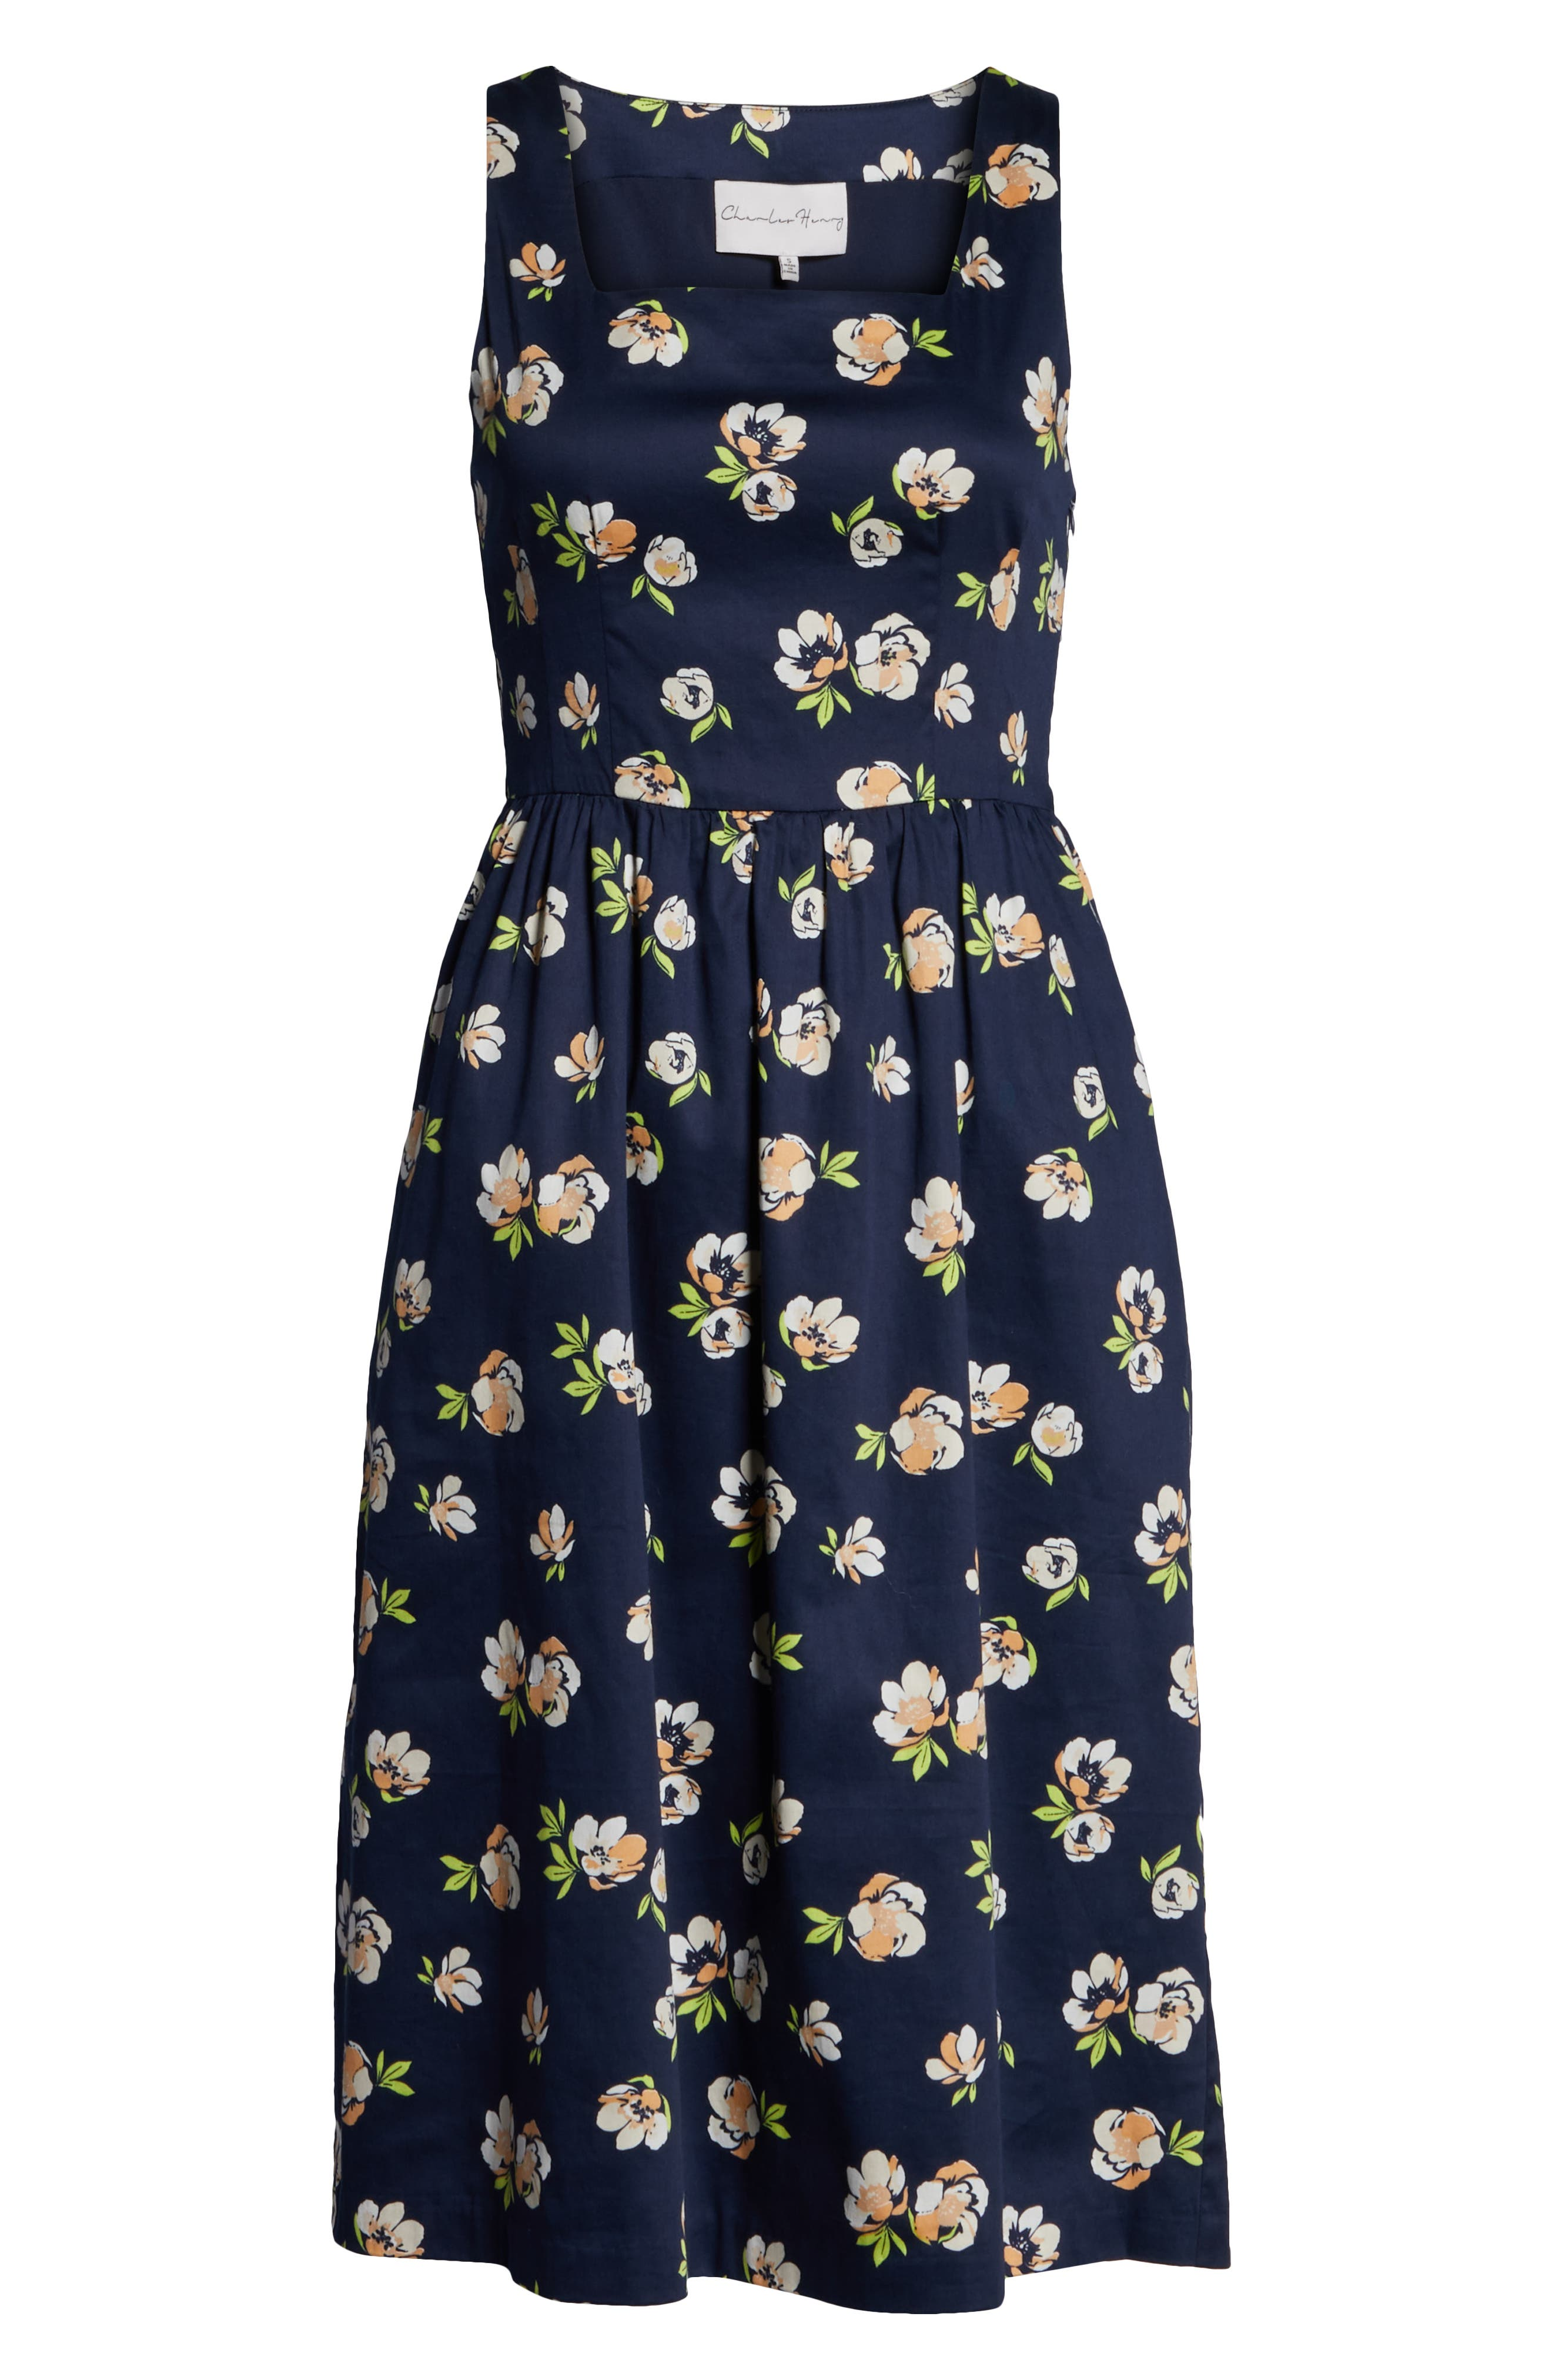 CHARLES HENRY, Sleeveless Fit & Flare Dress, Alternate thumbnail 7, color, NAVY PEACH FLORAL